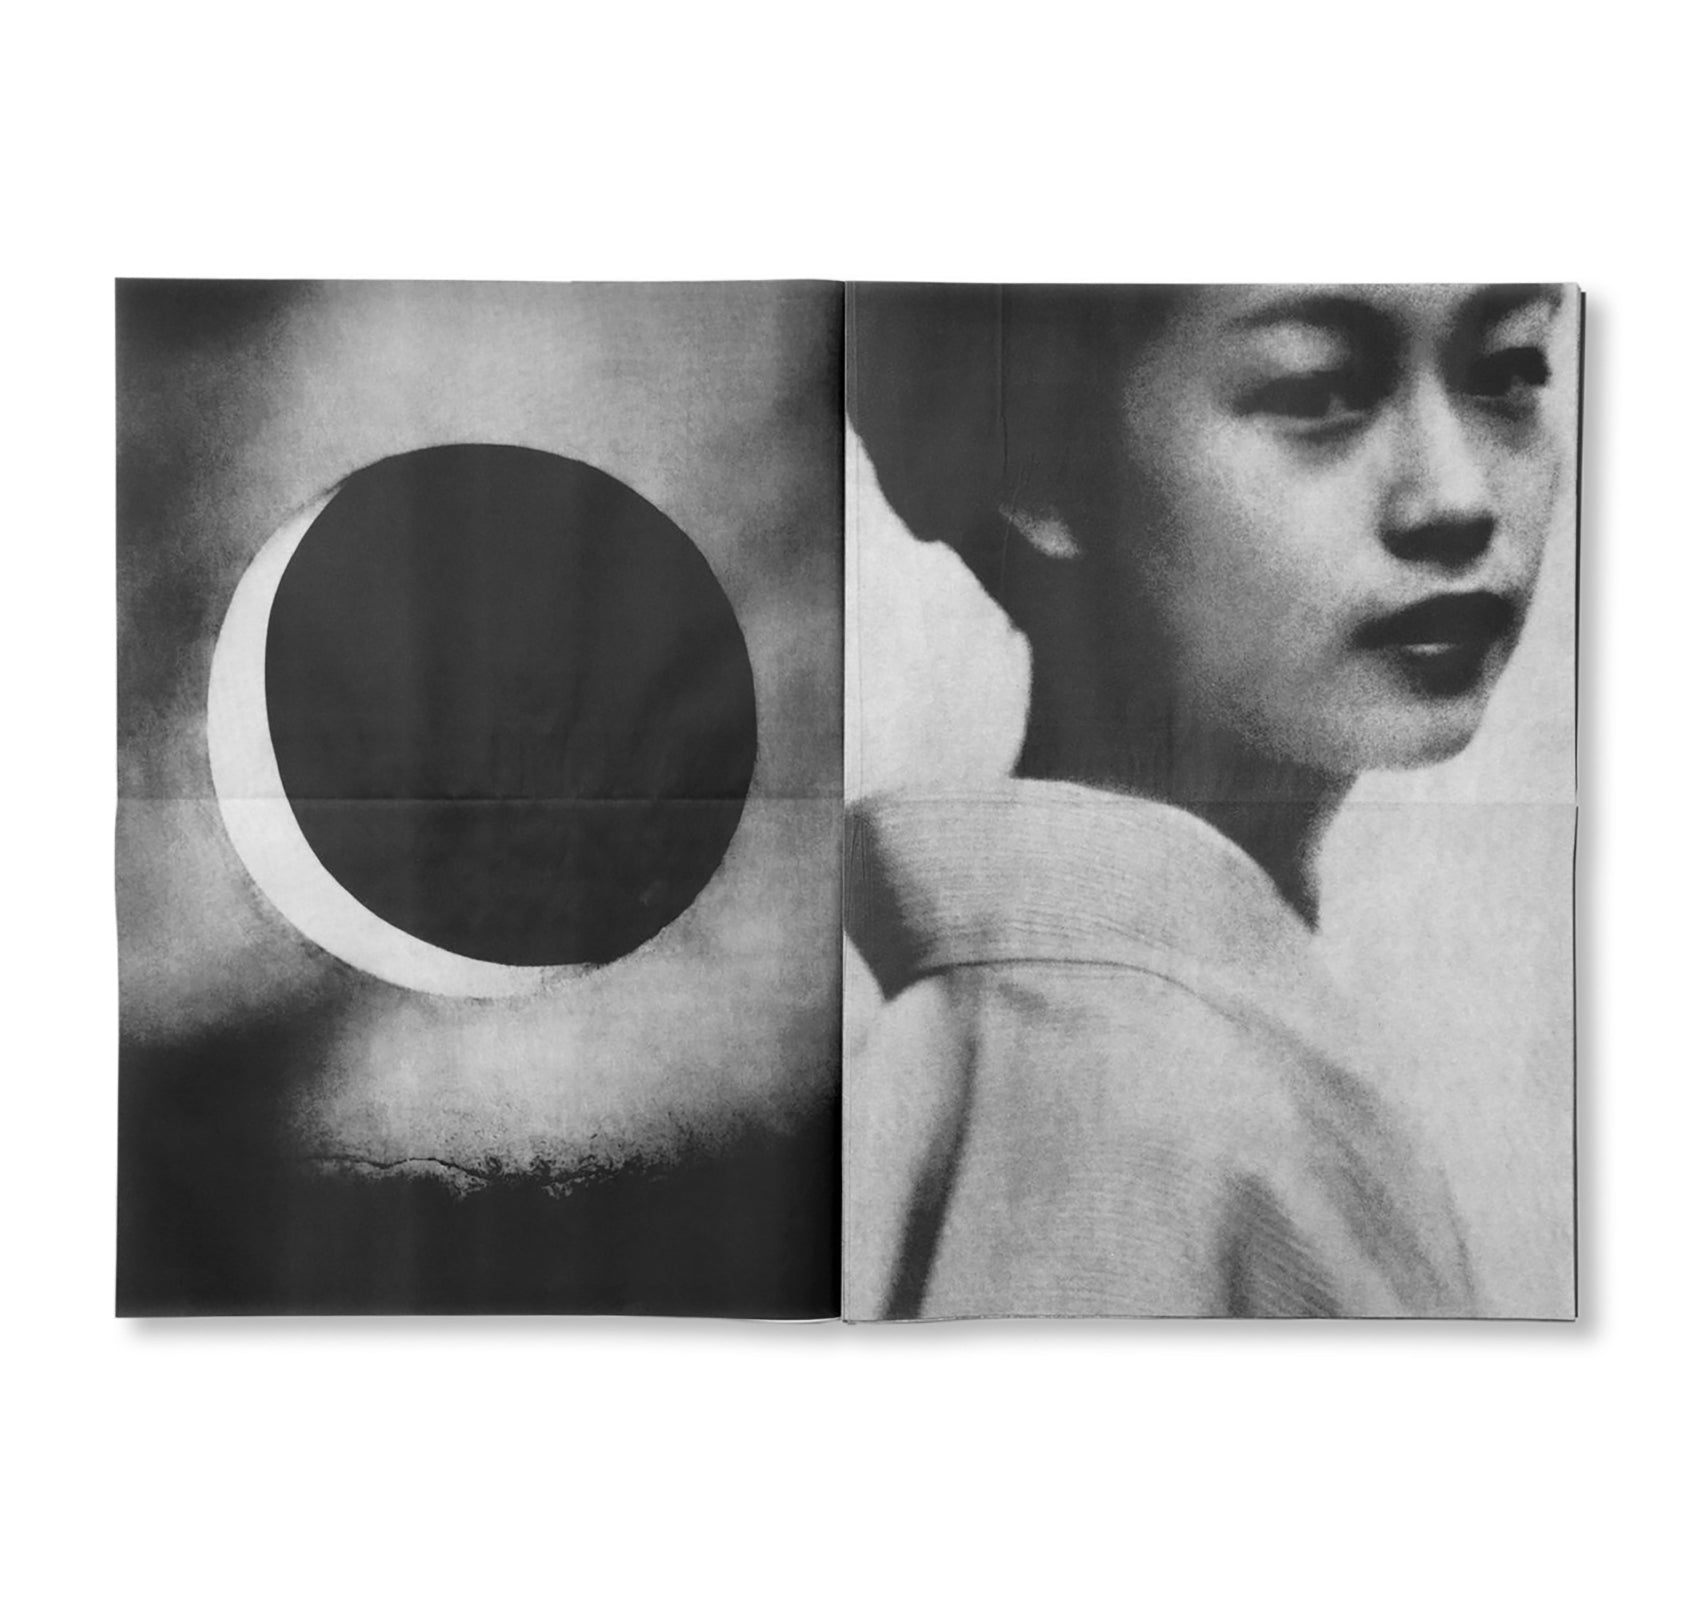 STILLED by Edward Dimsdale